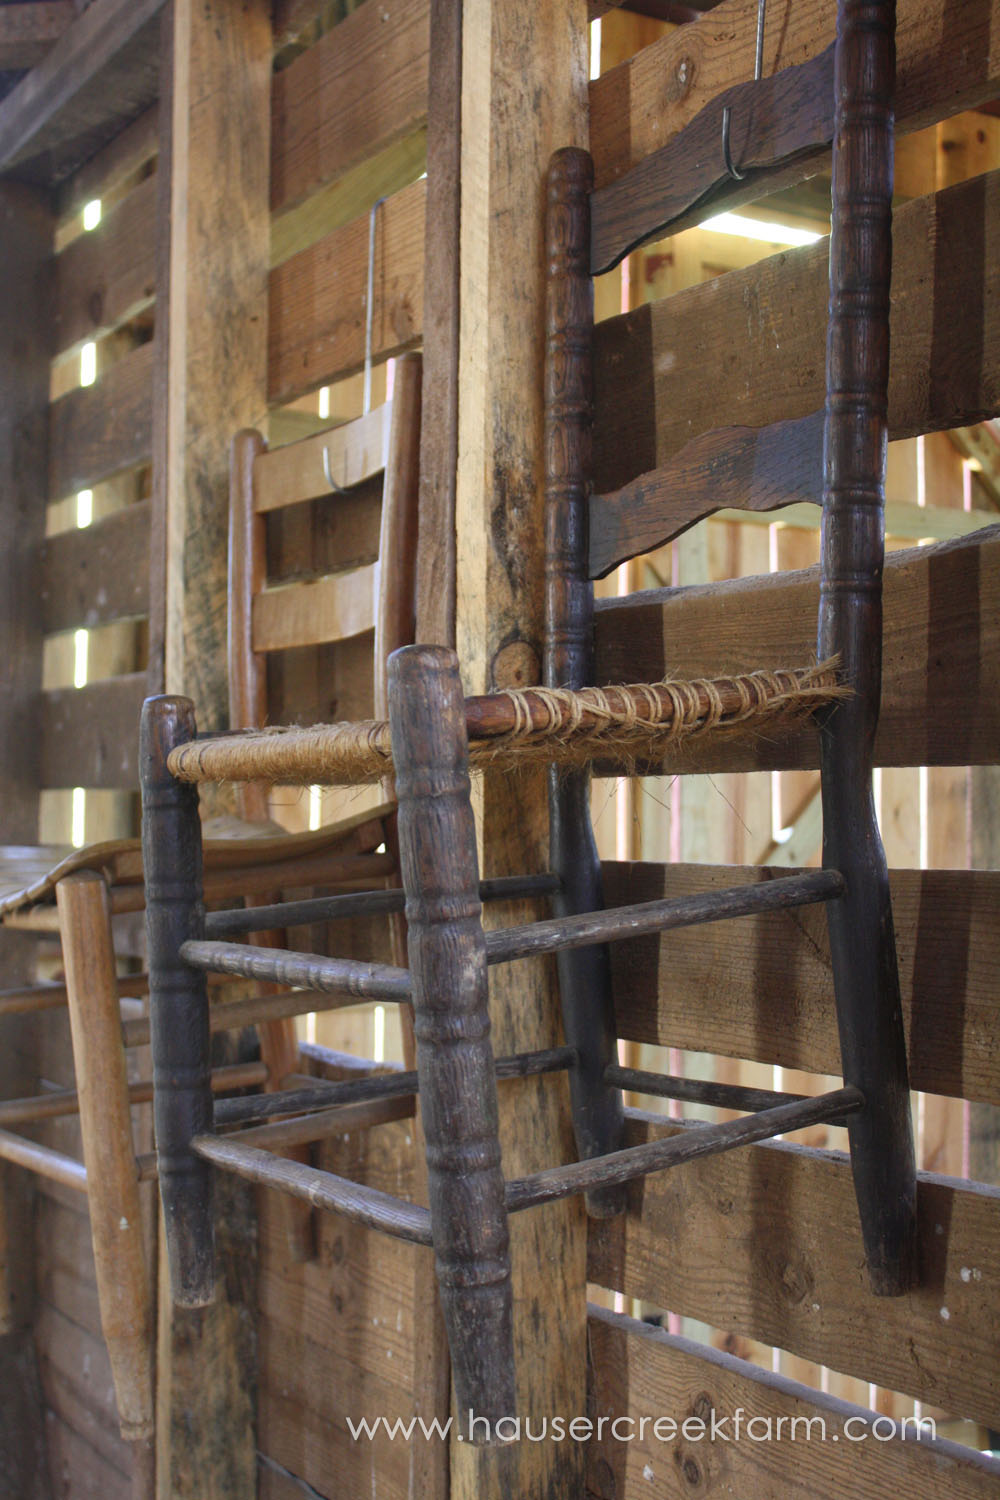 old-wooden-chairs-hanging-from-barn-wall-at-farm-in-rural-north-carolina-IMG_0593.jpg